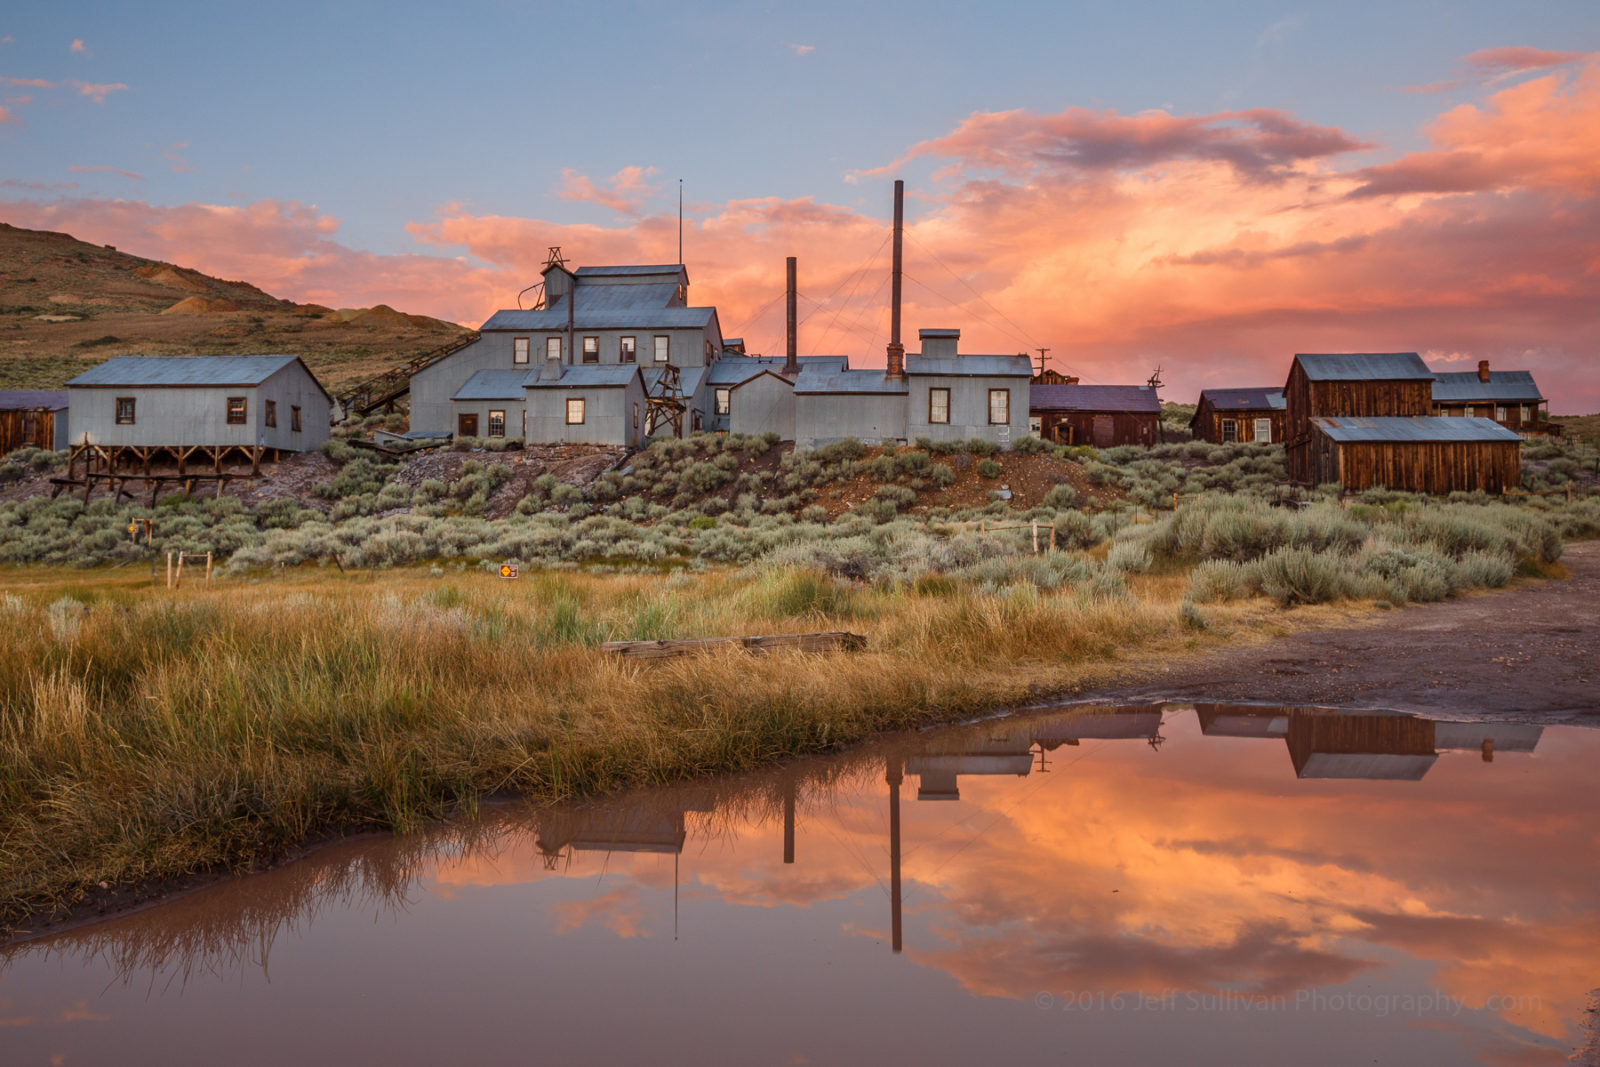 Standard Mill Sunset Reflection in Bodie